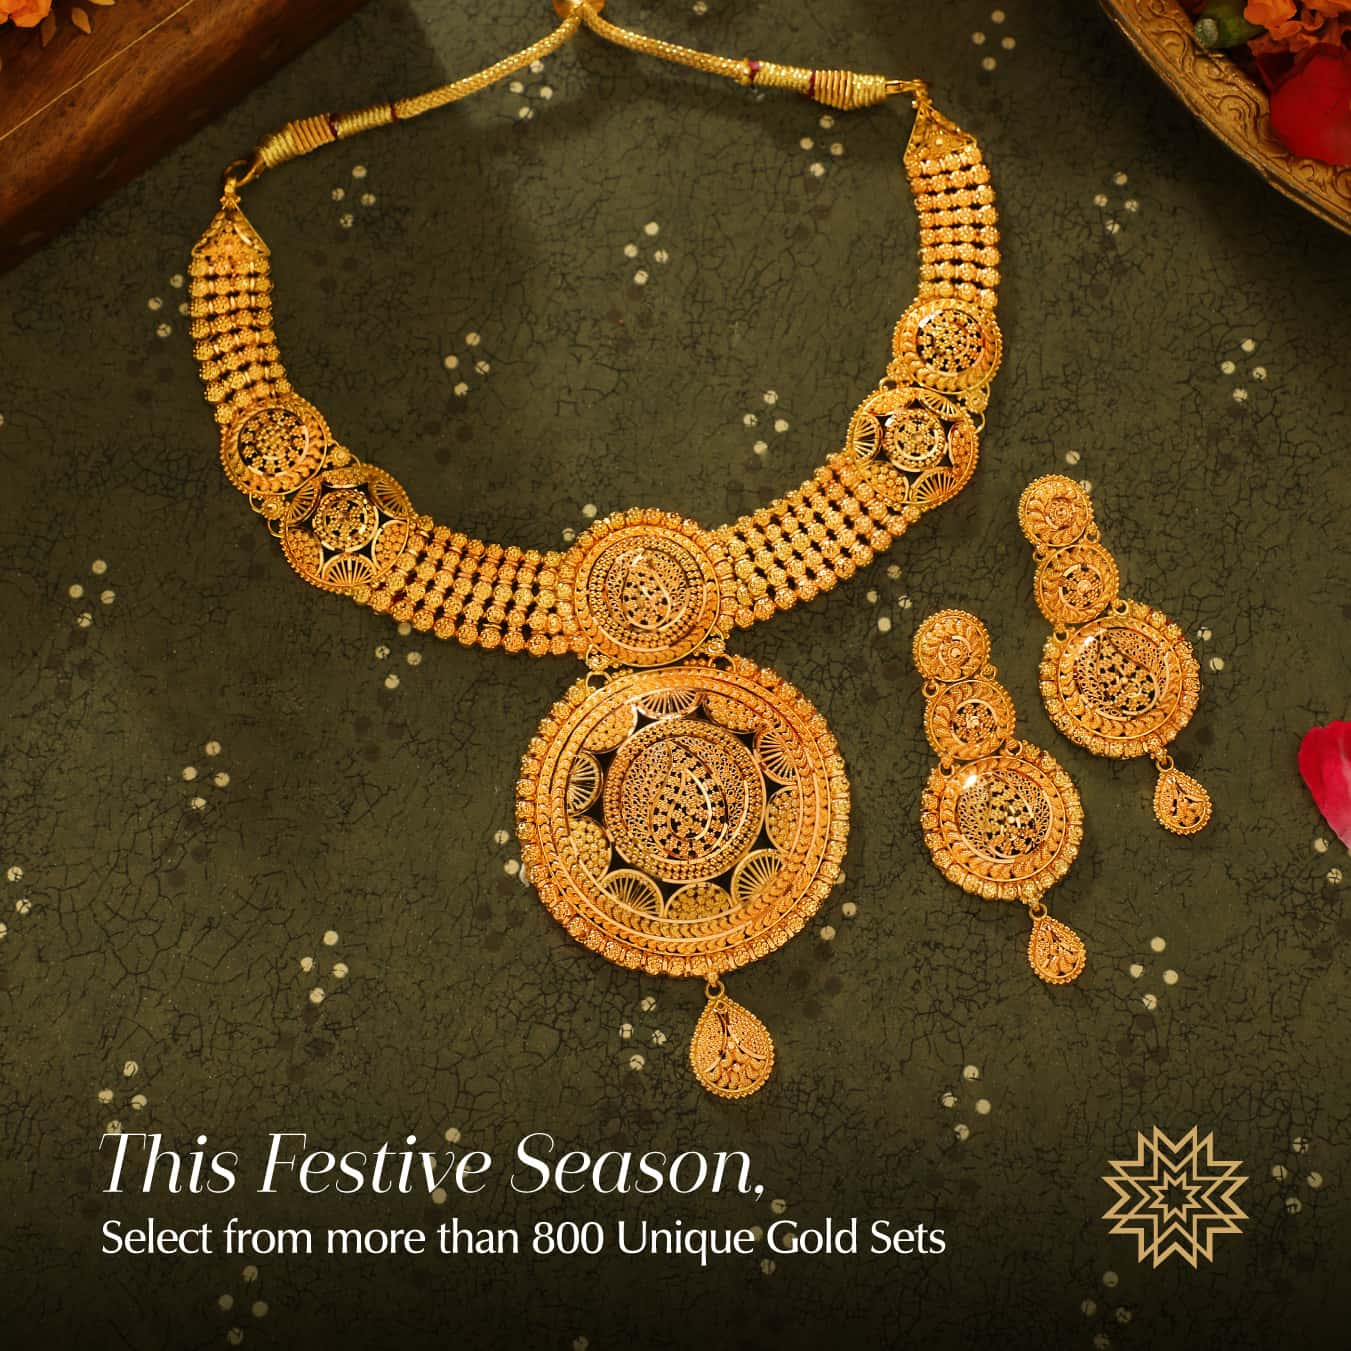 Her first Diwali with the family, they wanted to make it special. A gift of little florets set in gold gave her a smile that spoke her feelings untold. She felt truly like their daughter they loved, not their daughter in law whom they accepted.